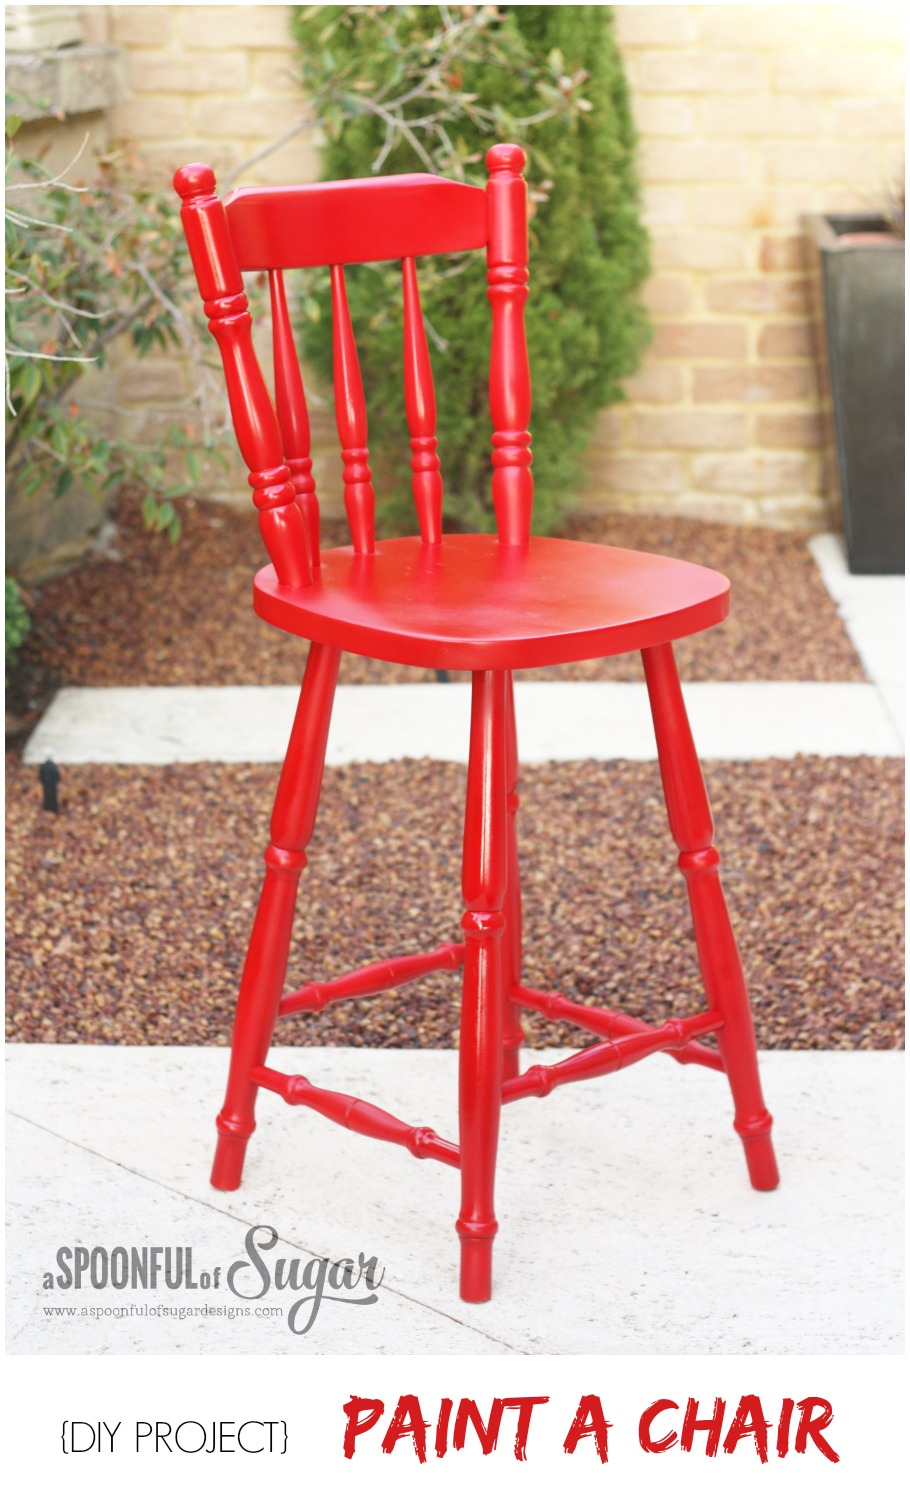 diy painted windsor chairs club leather swivel transform an old wooden chair part 2 a spoonful of sugar paint